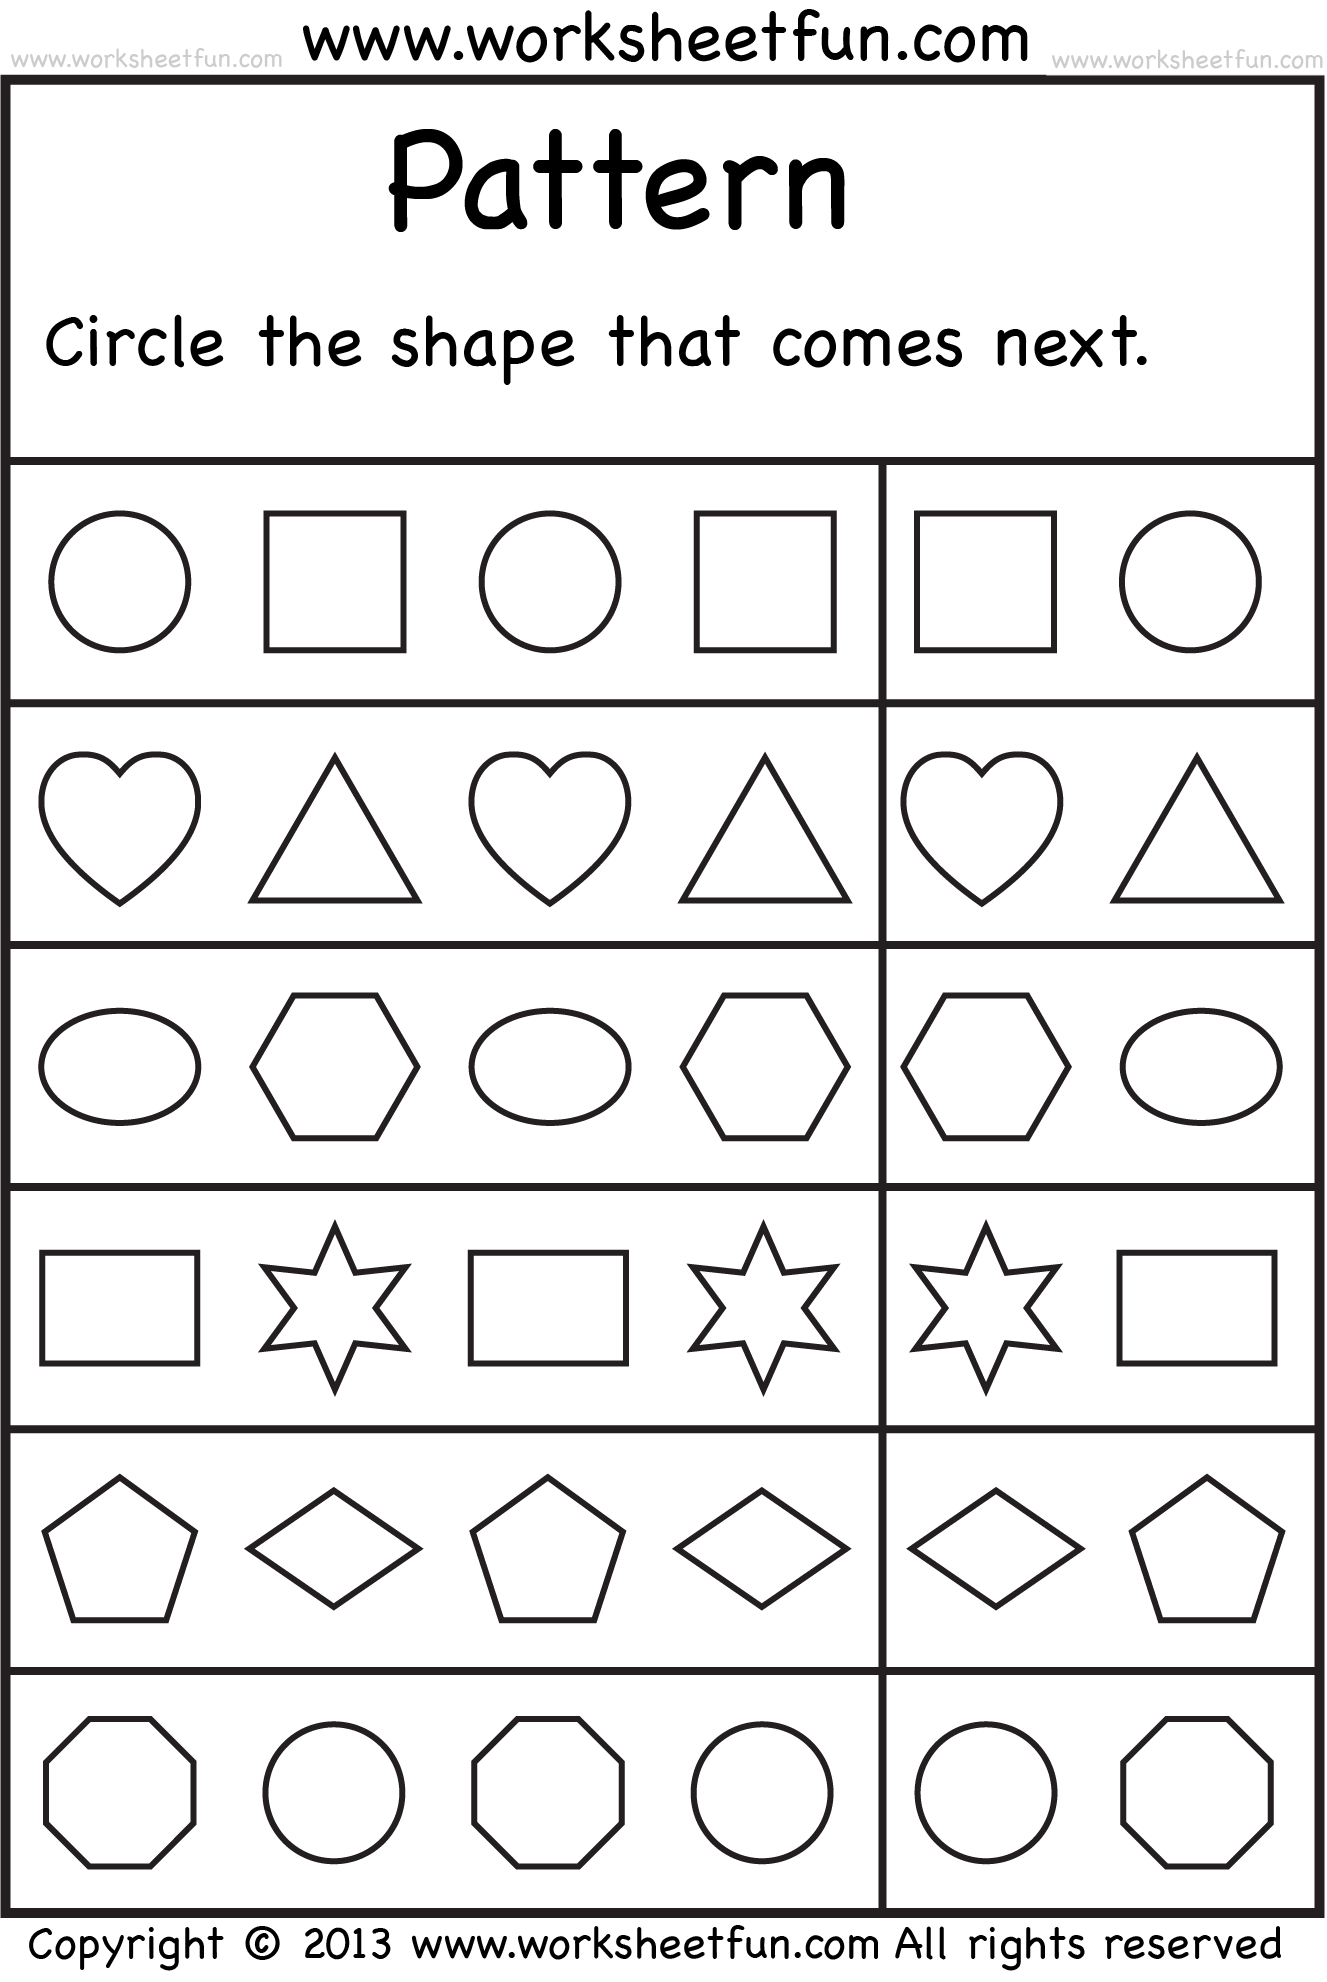 Weirdmailus  Terrific  Images About School Worksheets On Pinterest  Number Words  With Great  Images About School Worksheets On Pinterest  Number Words Alphabet Worksheets And Free Printable Kindergarten Worksheets With Astonishing Addition Math Facts Worksheets Also St Grade Reading Worksheet In Addition Fun Worksheets For Th Grade And Standard Deviation Worksheets As Well As Subtraction Of Integers Worksheet Additionally Transcontinental Railroad Worksheet From Pinterestcom With Weirdmailus  Great  Images About School Worksheets On Pinterest  Number Words  With Astonishing  Images About School Worksheets On Pinterest  Number Words Alphabet Worksheets And Free Printable Kindergarten Worksheets And Terrific Addition Math Facts Worksheets Also St Grade Reading Worksheet In Addition Fun Worksheets For Th Grade From Pinterestcom